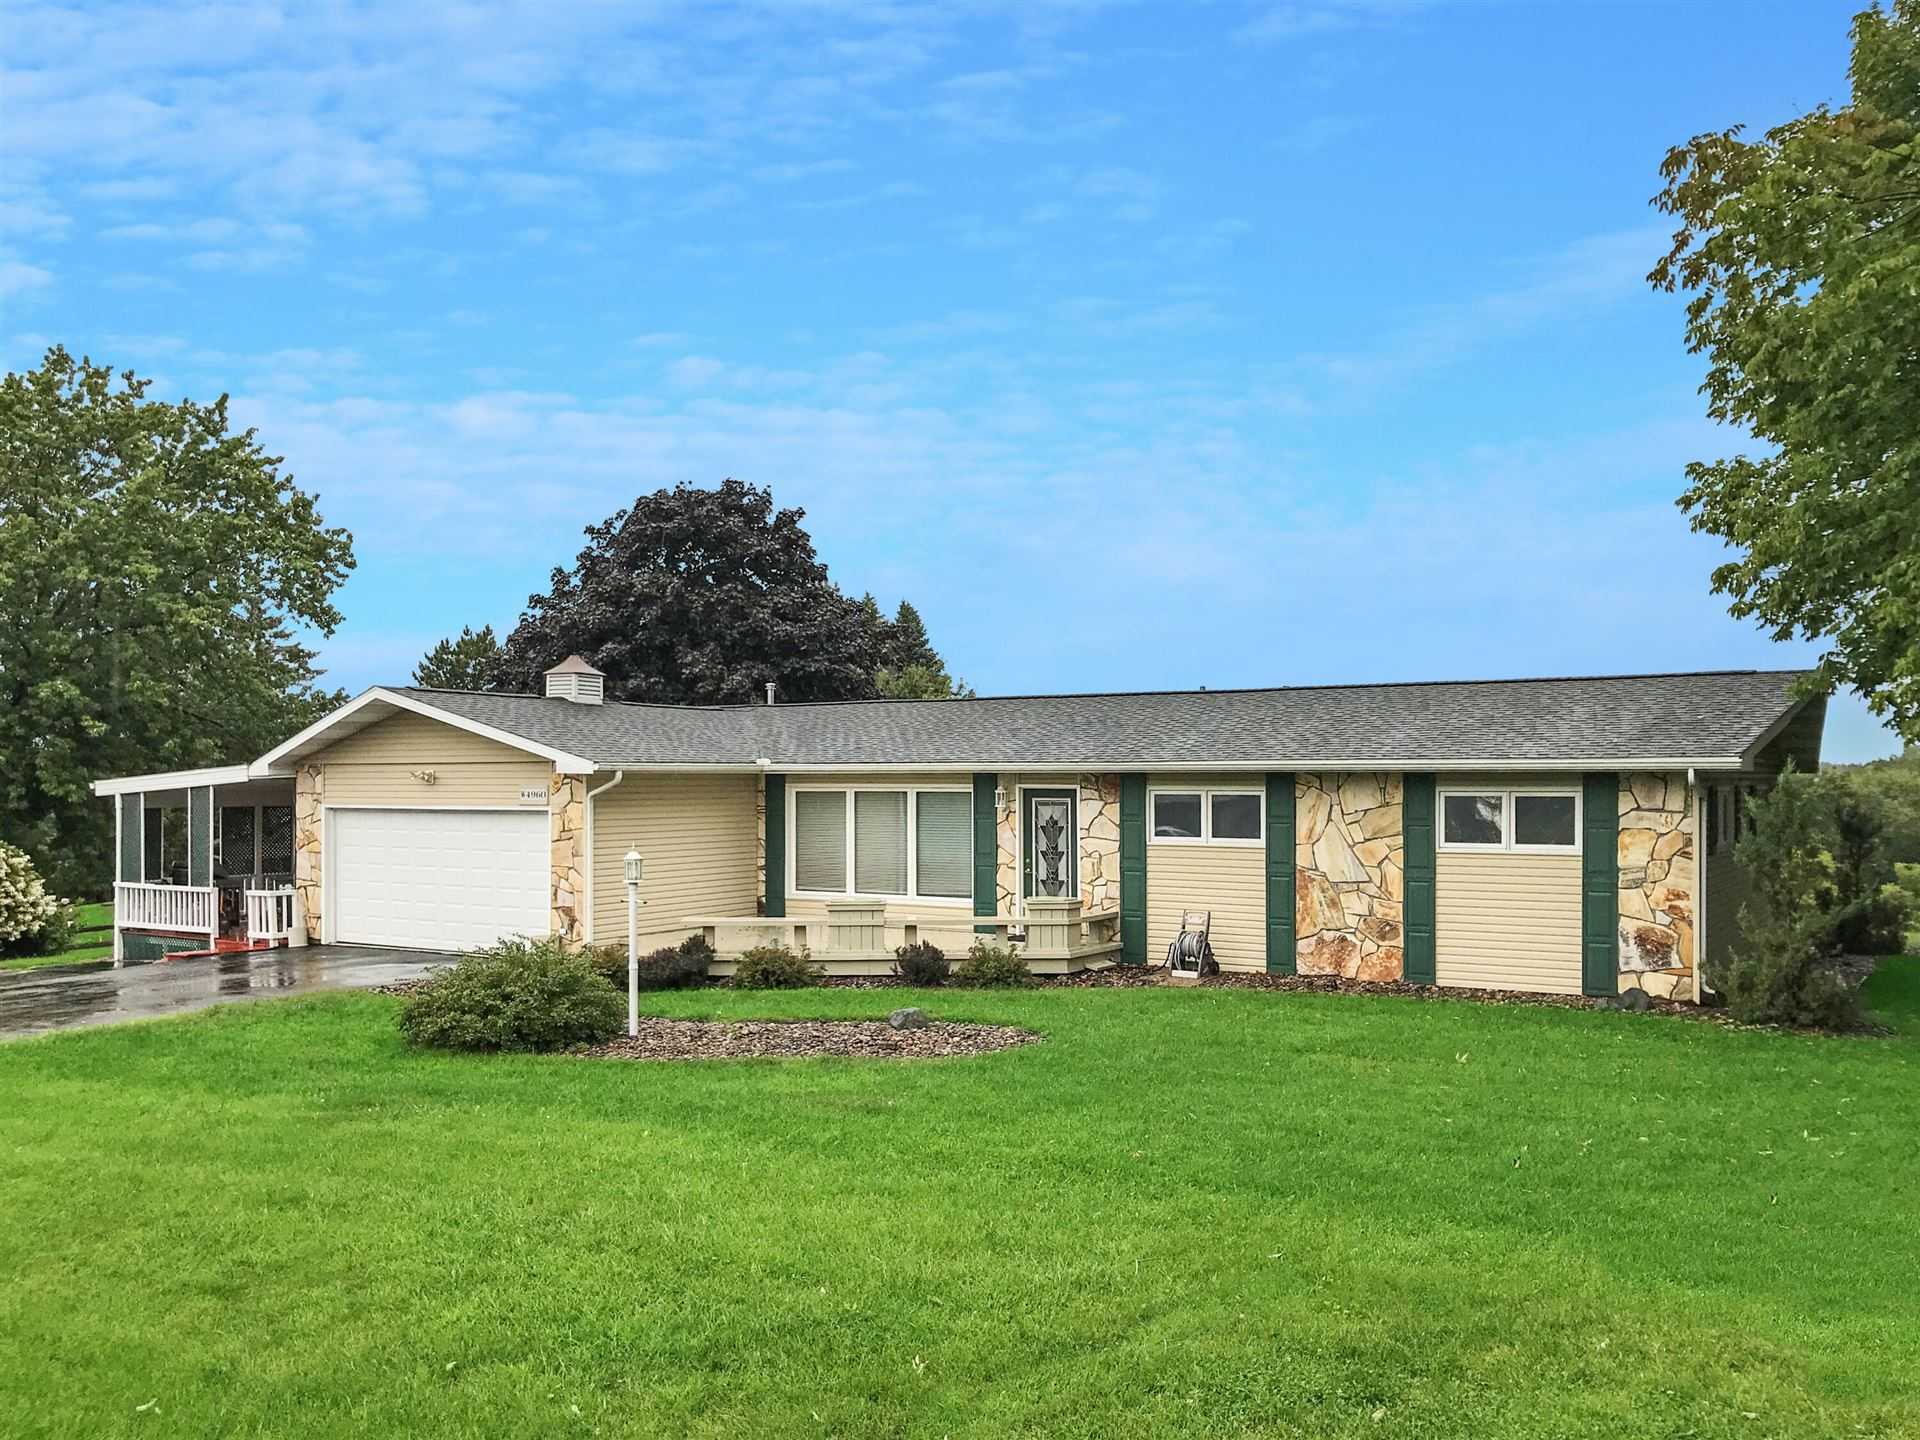 W4960 Woodhaven DR, Shelby, WI 54601 - MLS#: 1760011